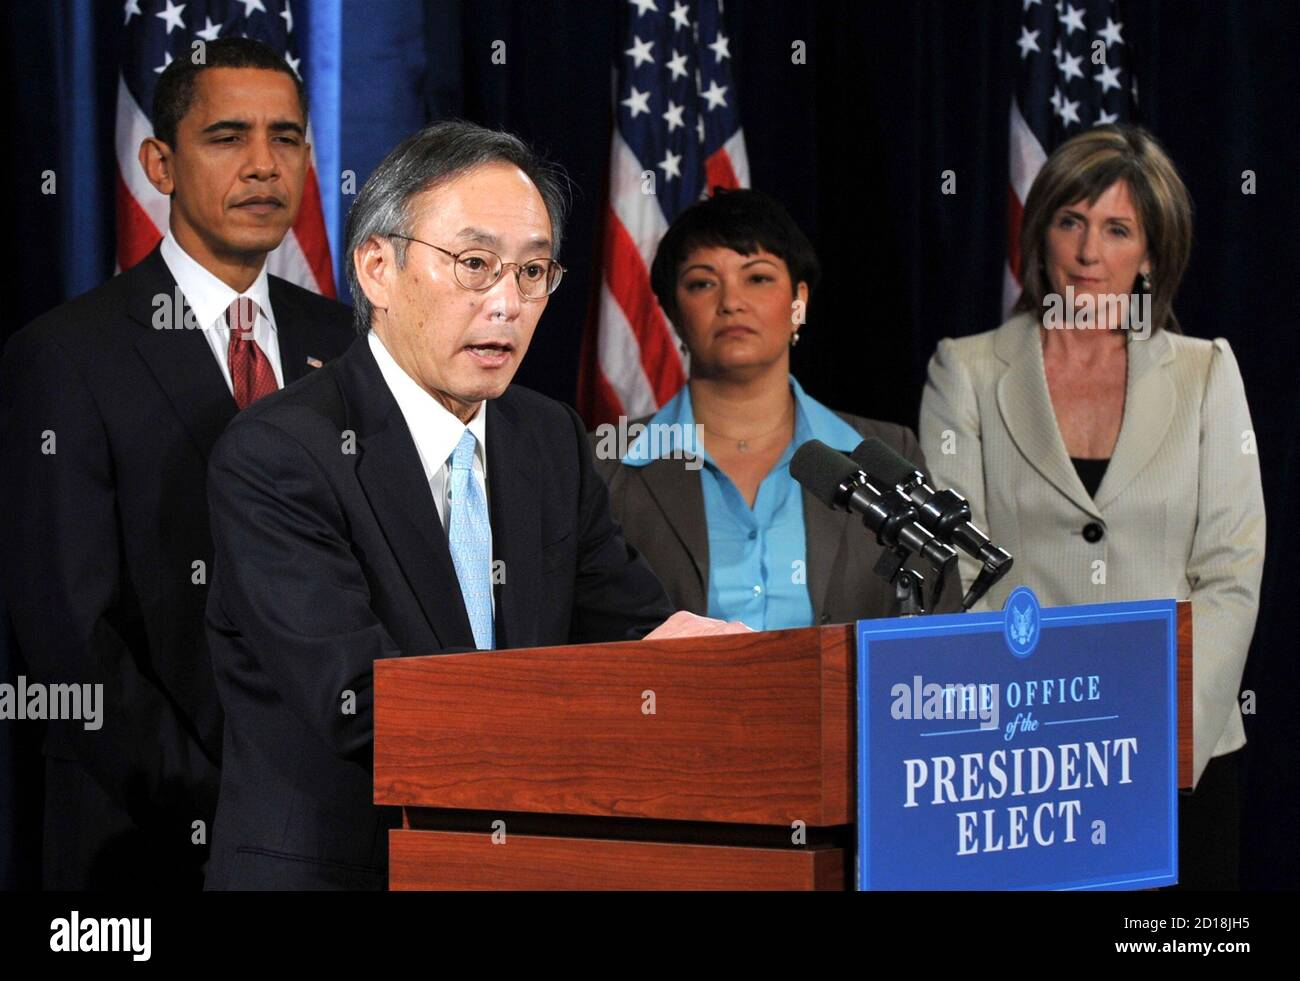 U.S. President-elect Barack Obama (2nd L) looks on as Steven Chu, director of Lawrence Berkeley National Lab, speaks after being introduced as Obama's Energy Secretary during a news conference in Chicago, December 15, 2008. Obama also named former Environmental Protection Agency (EPA) chief Carol Browner (R) to head a new council to coordinate White House energy, climate and environment policies, and Lisa Jackson (2nd-R), chief of staff for New Jersey's governor, to run the EPA.     REUTERS/Stephen J. Carrera (UNITED STATES) Stock Photo